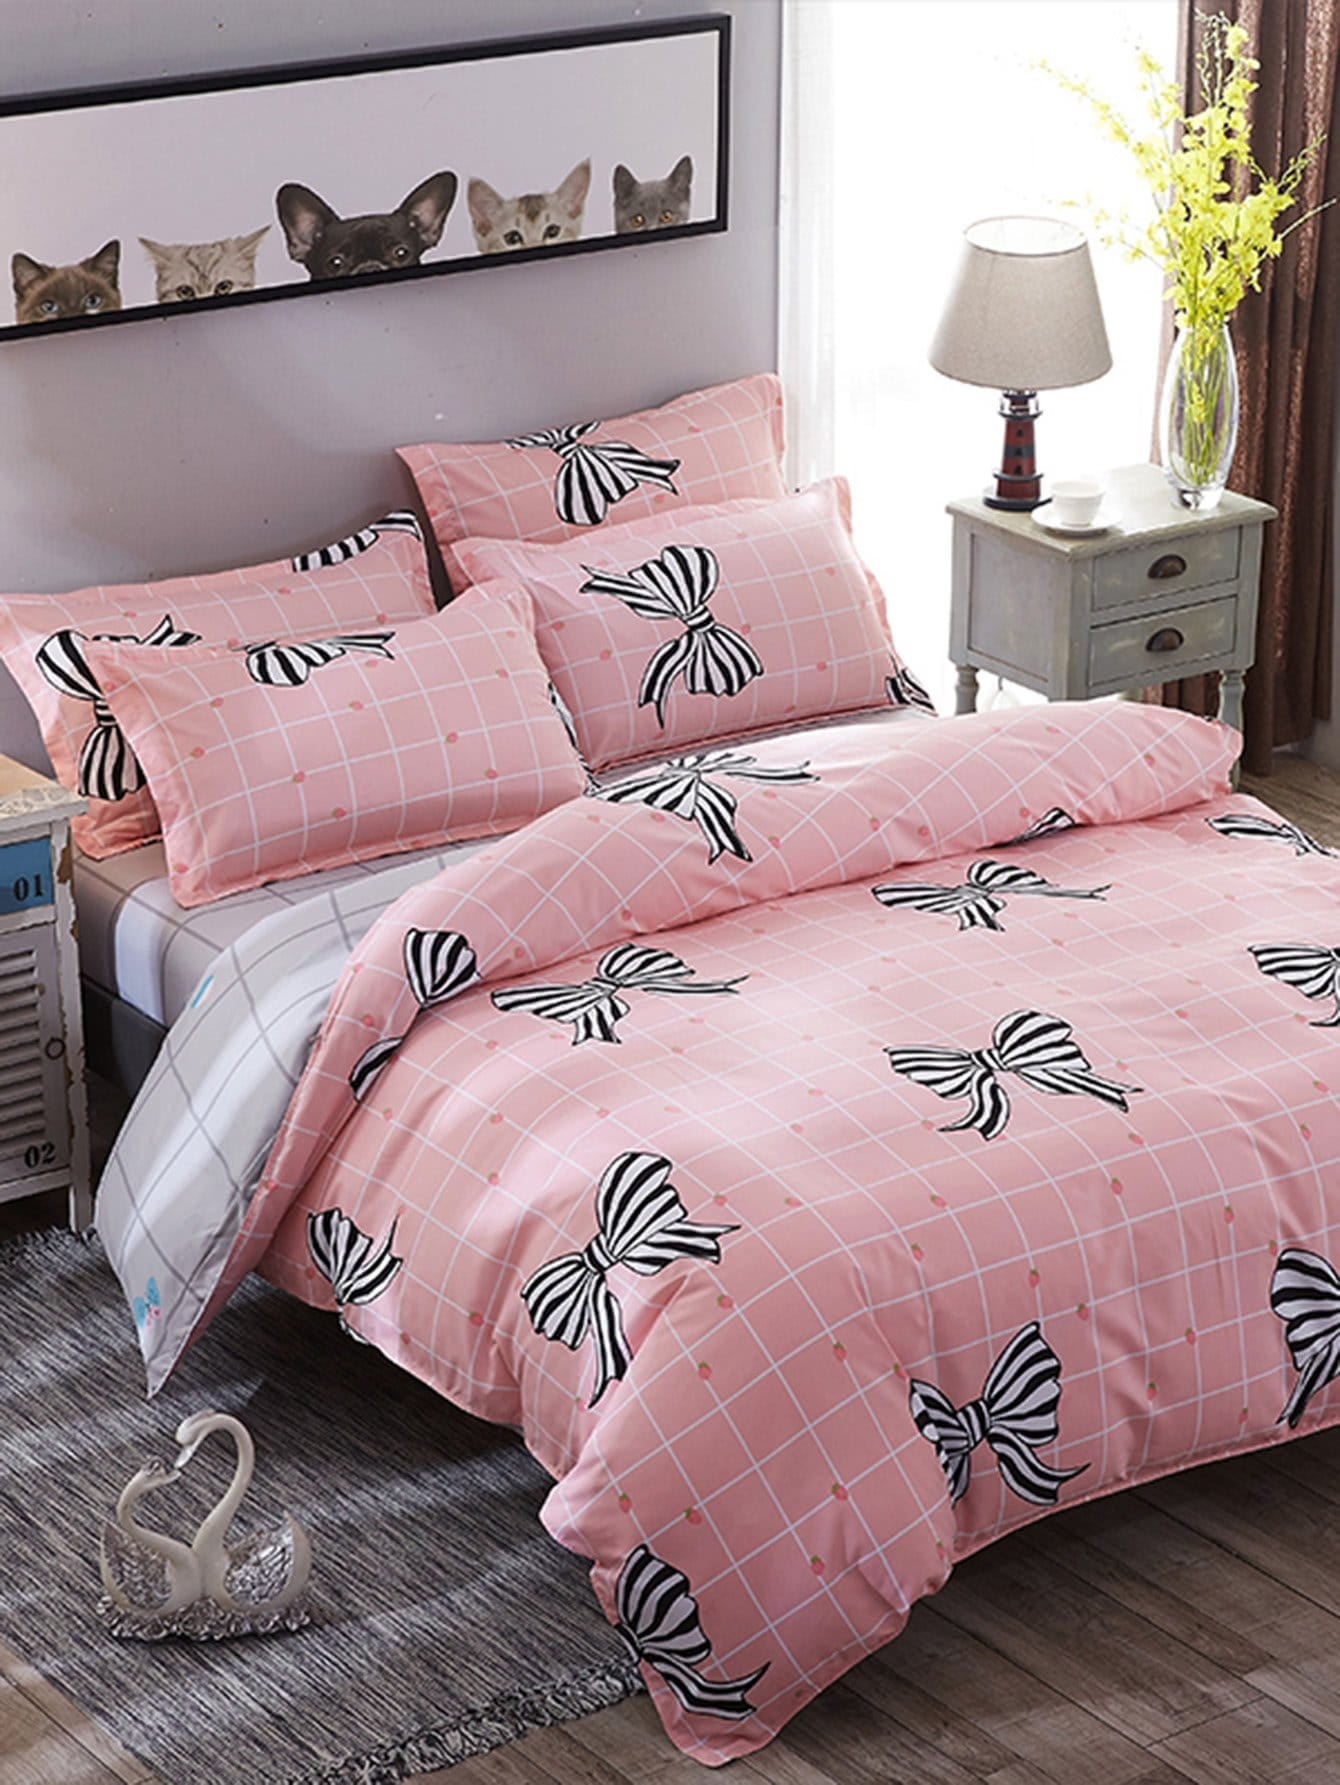 Bow & Grid Print Duvet Cover Set grid duvet cover set